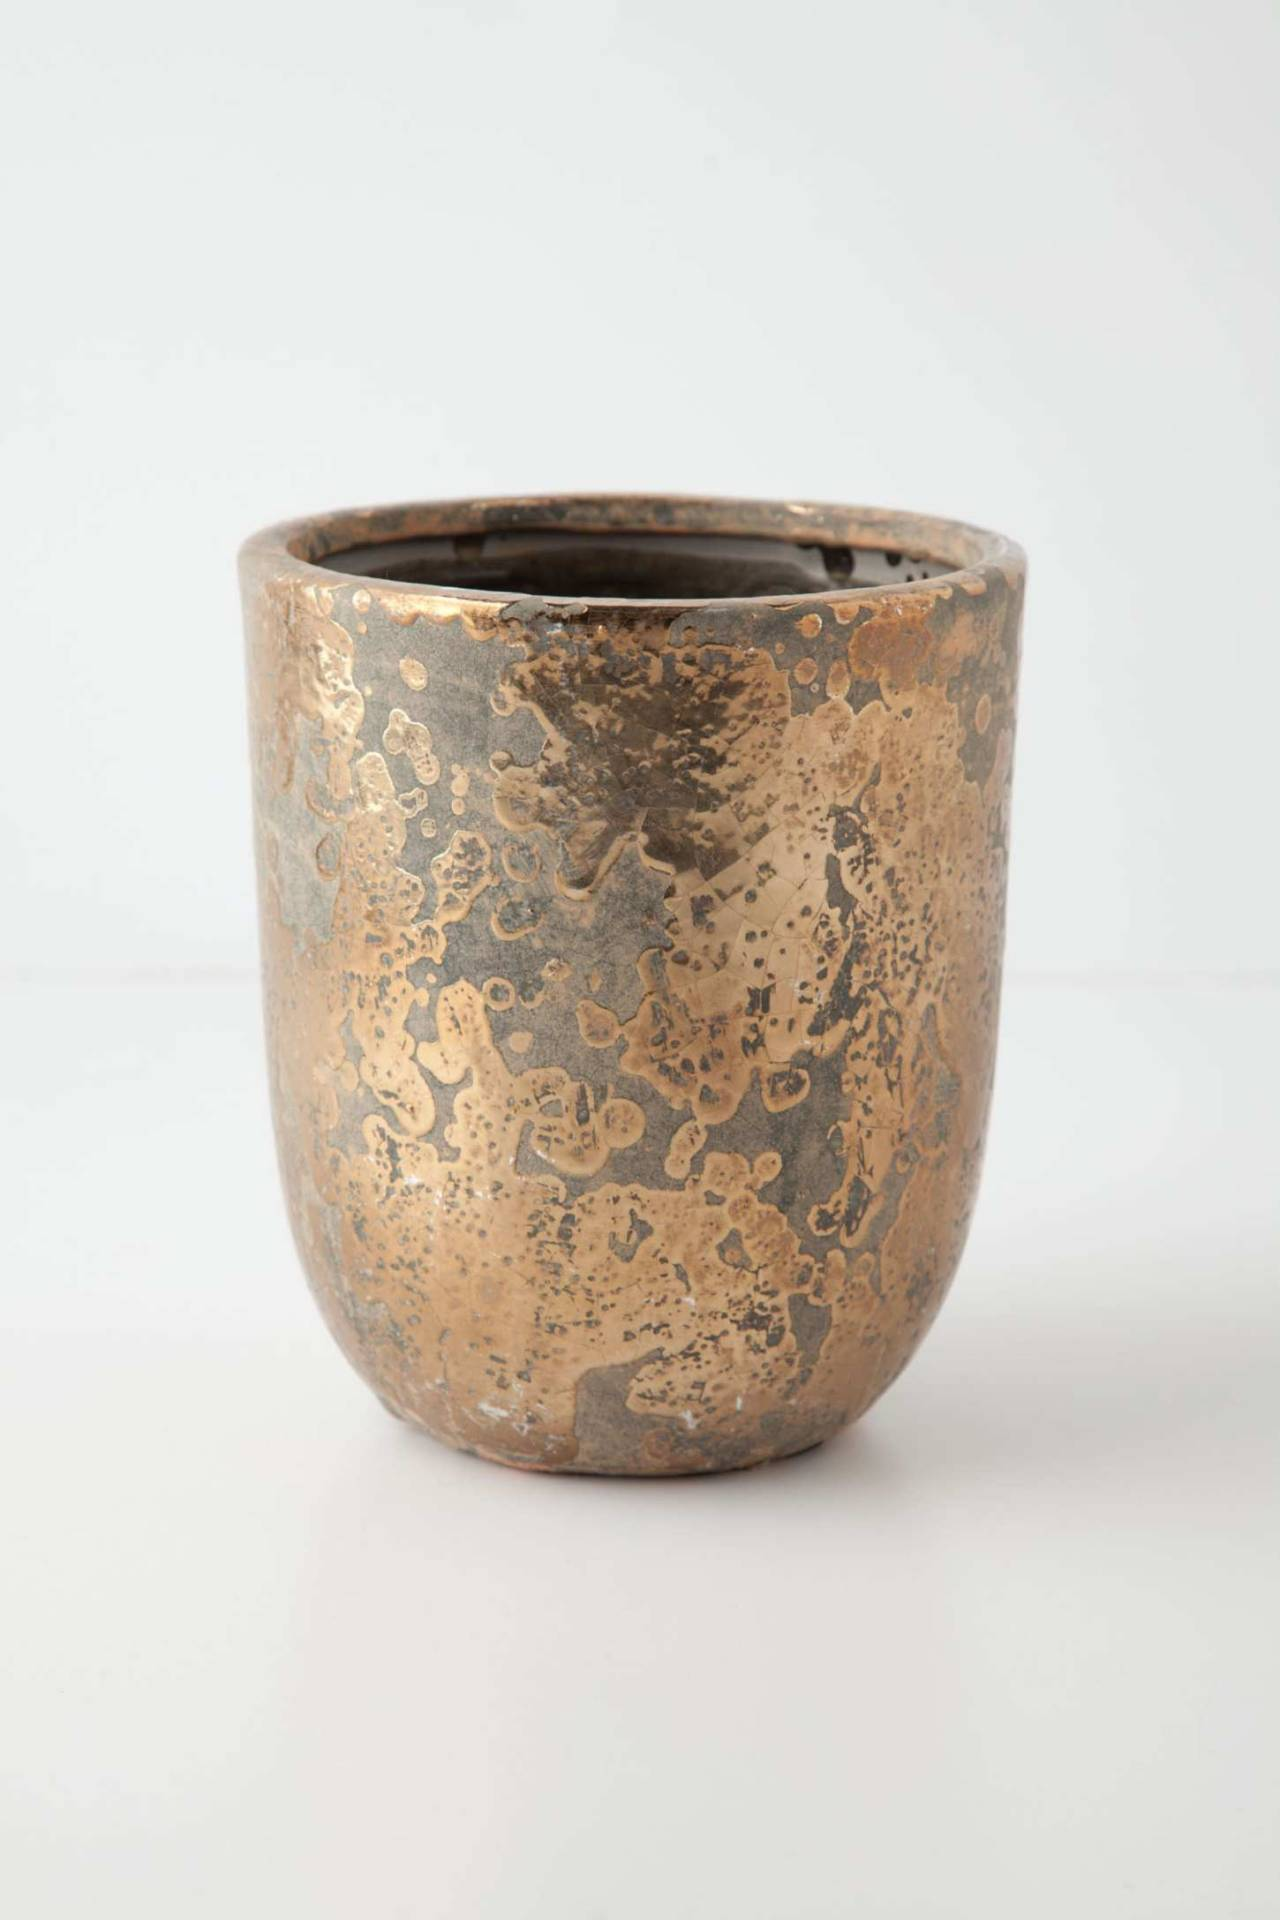 (via Metallic Crackle Herb Pot | Anthropologie.eu)